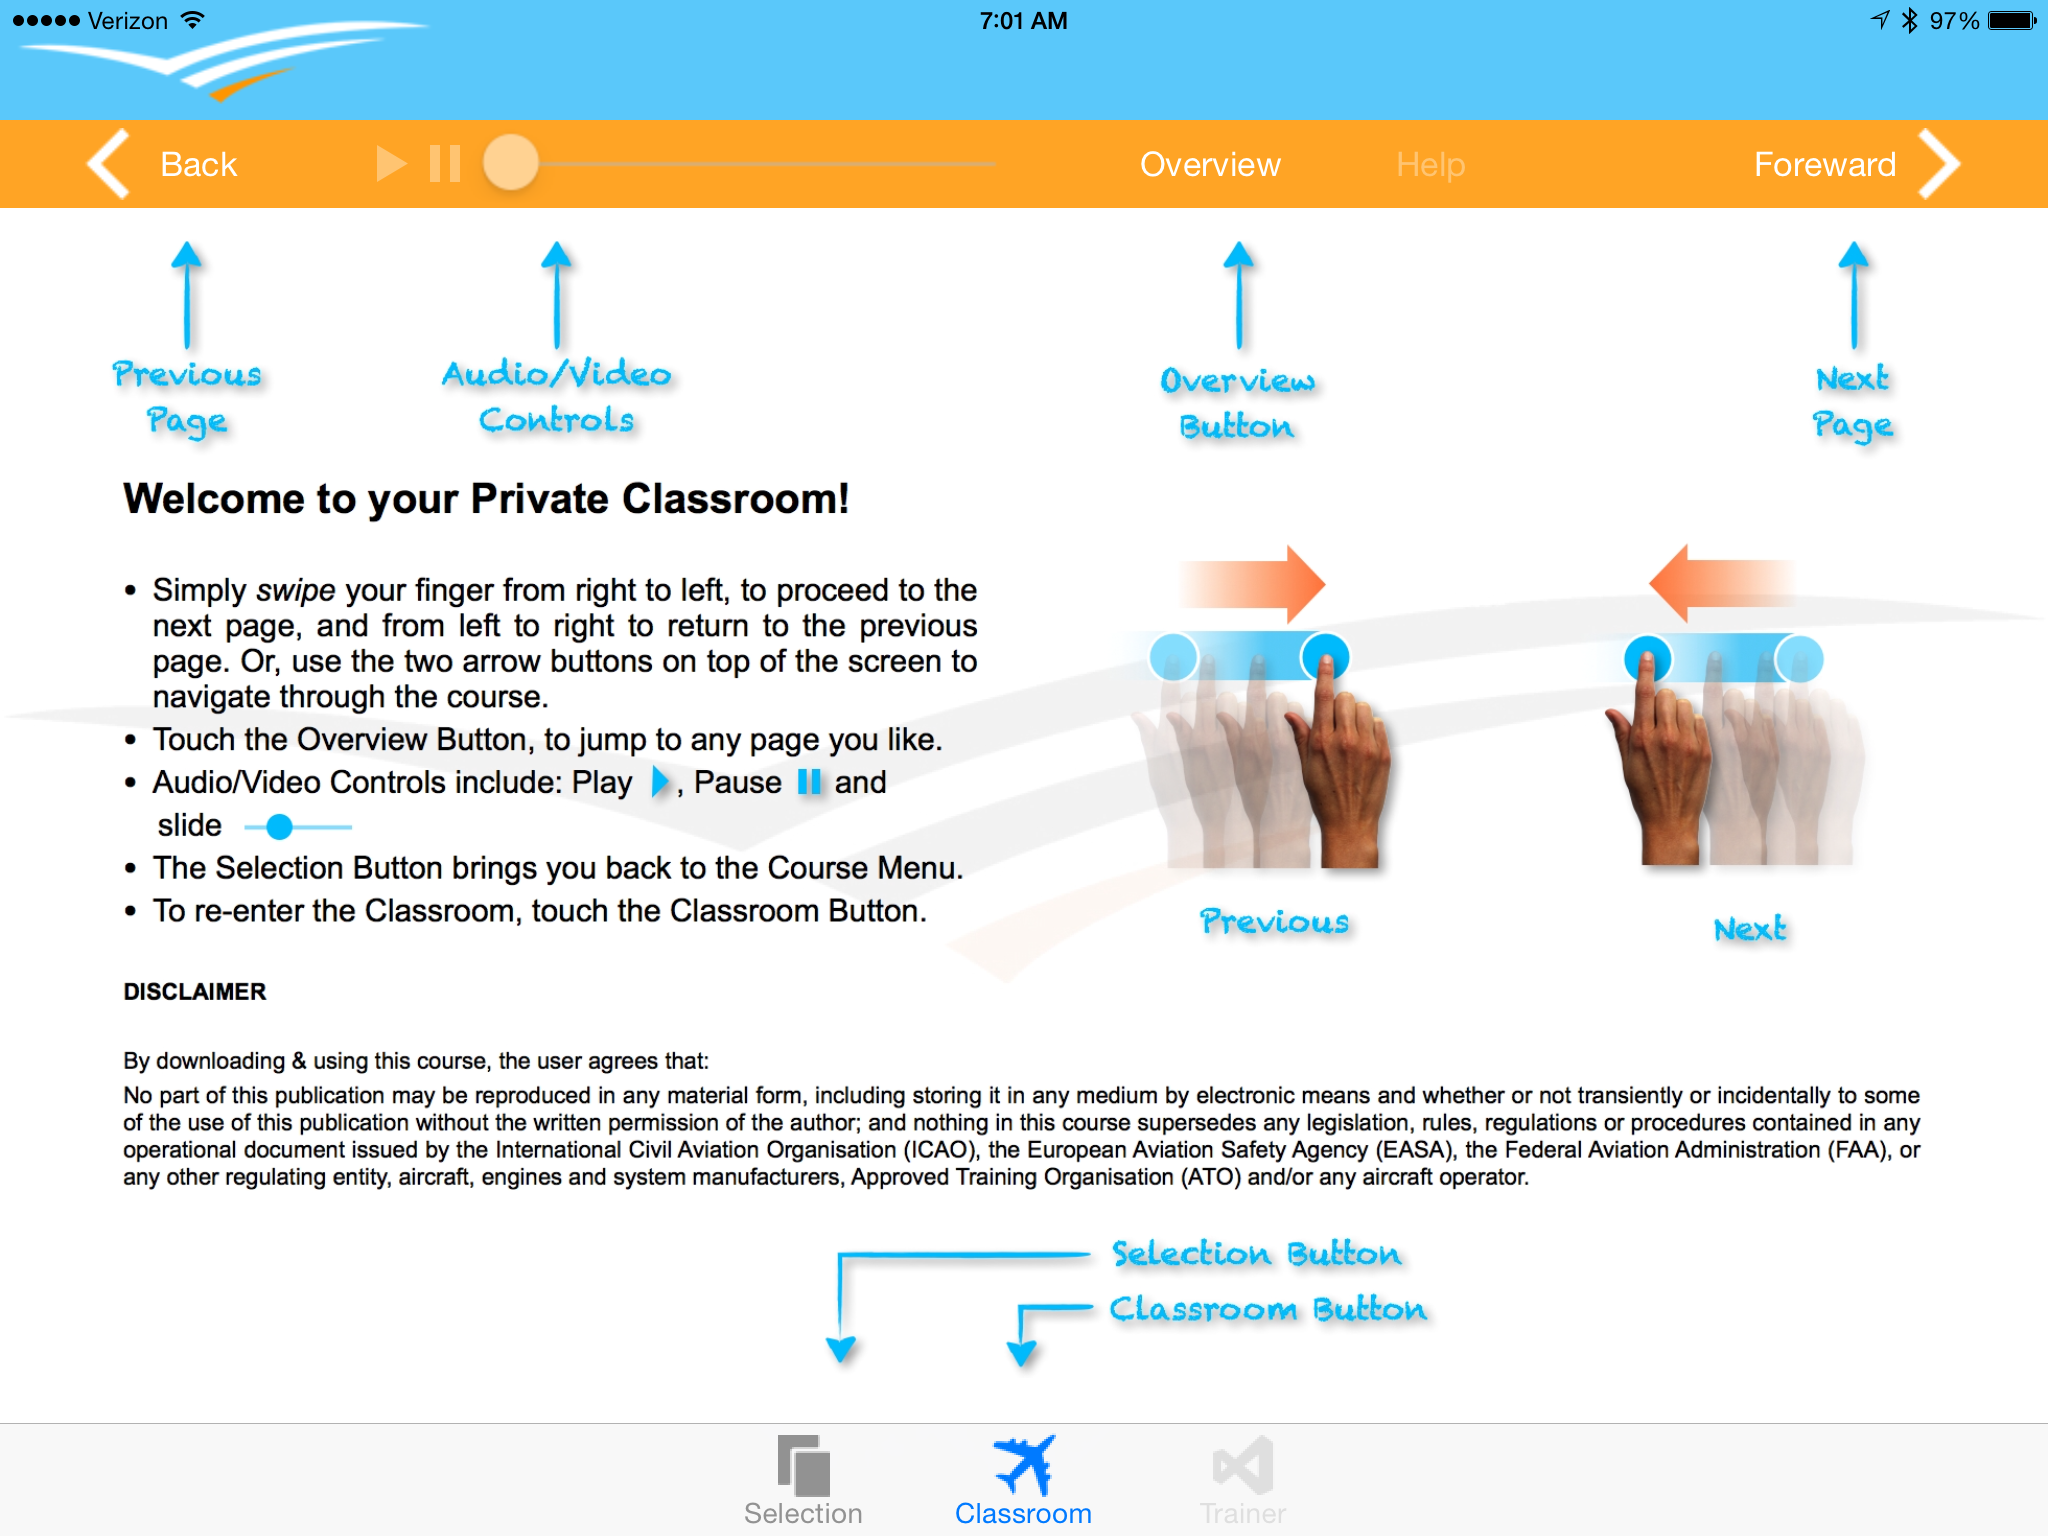 King Schools releases EASA pilot courses on the iPad